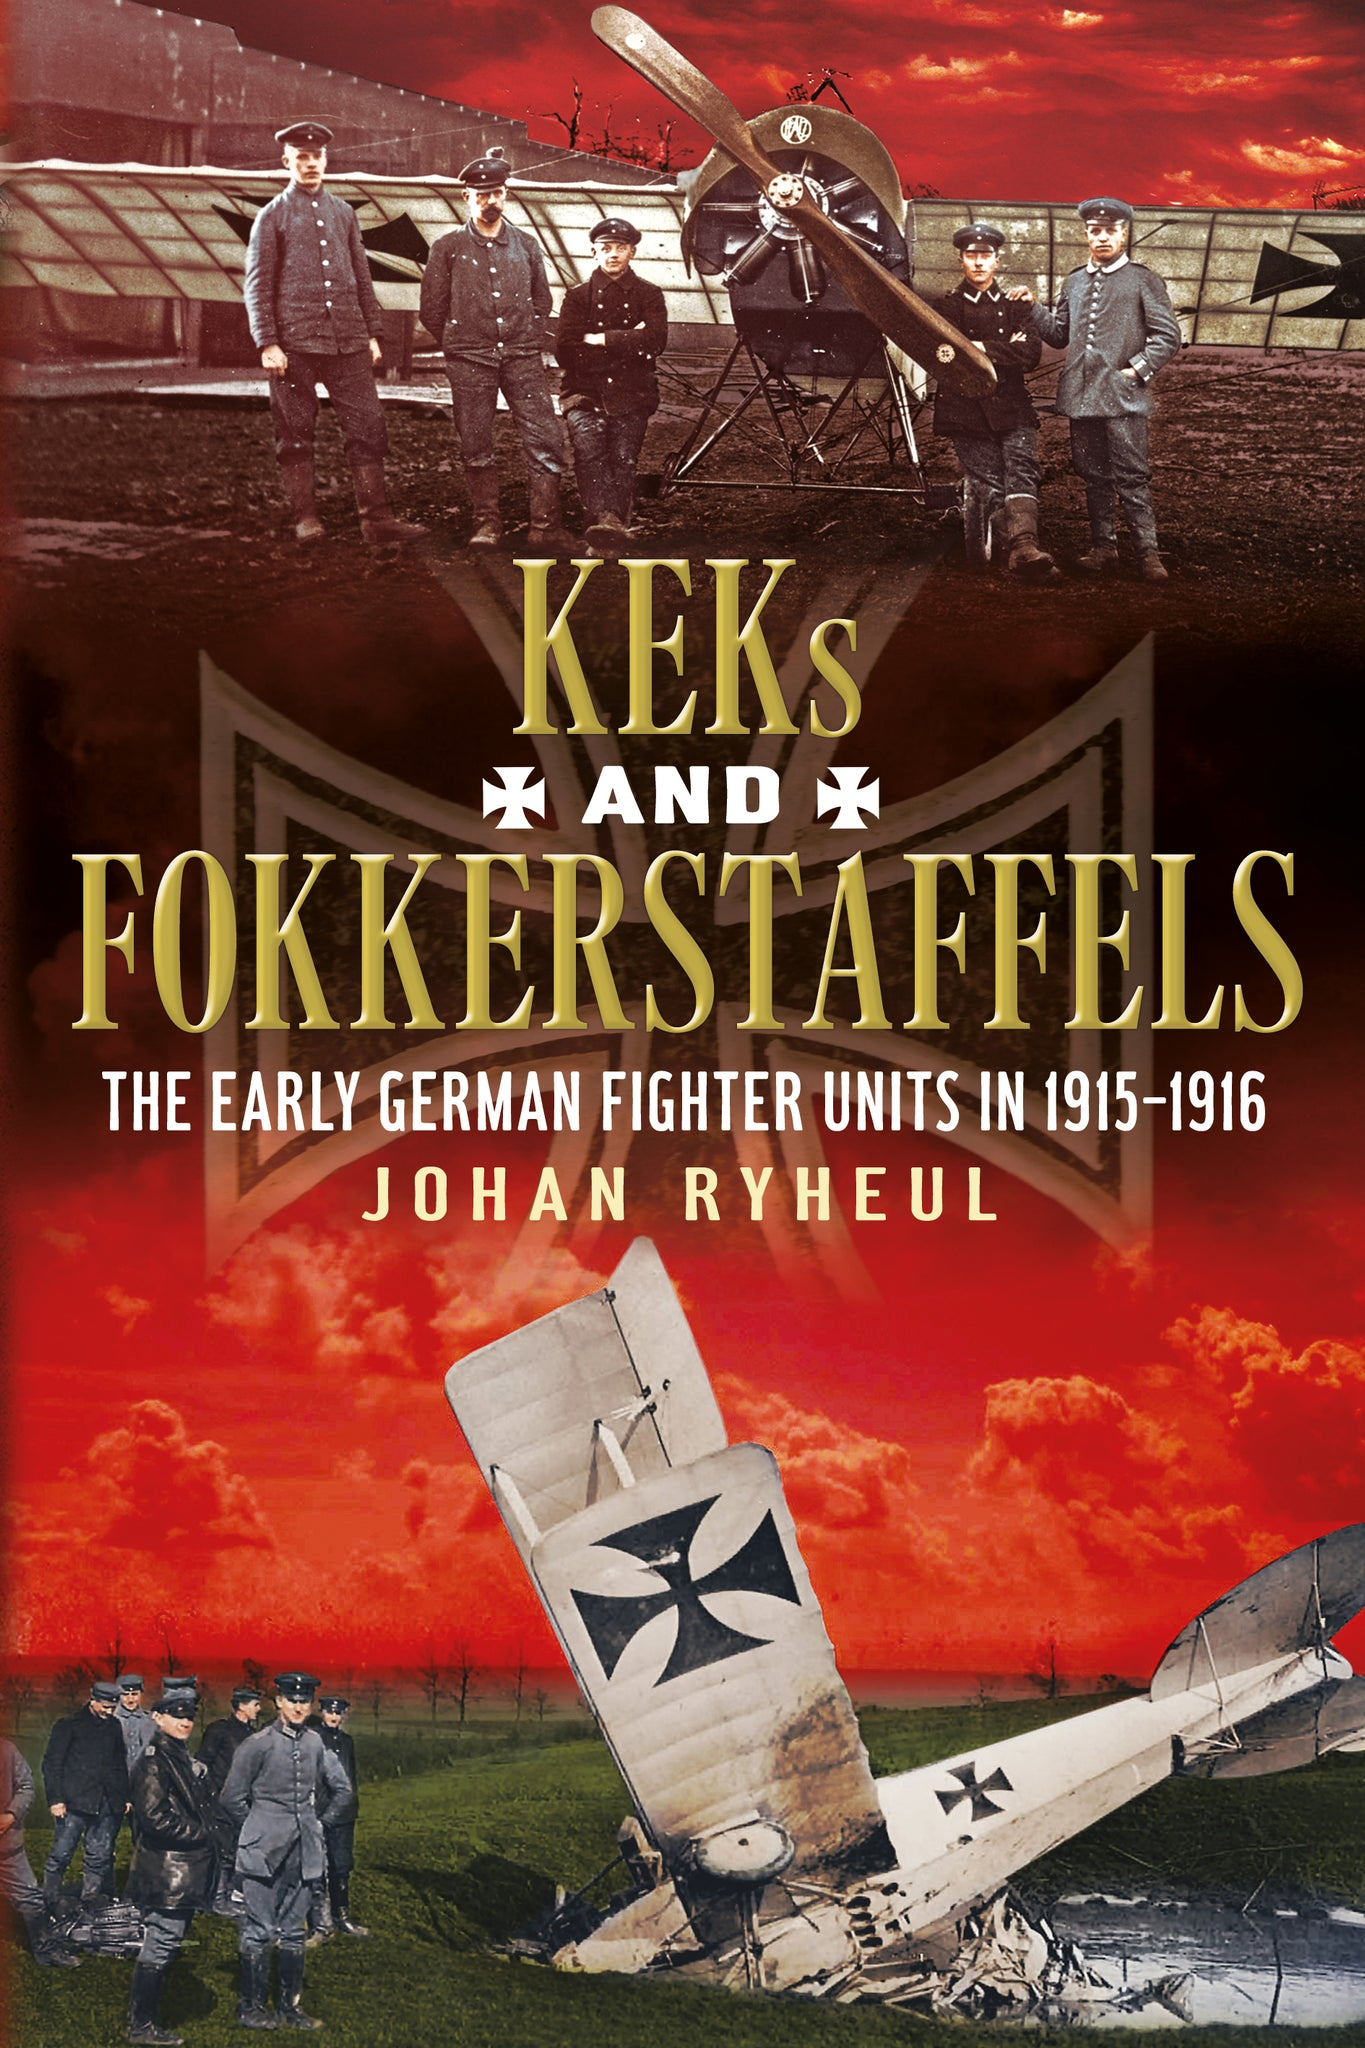 KEKs and Fokkerstaffels: The Early German Fighter Units in 1915–1916